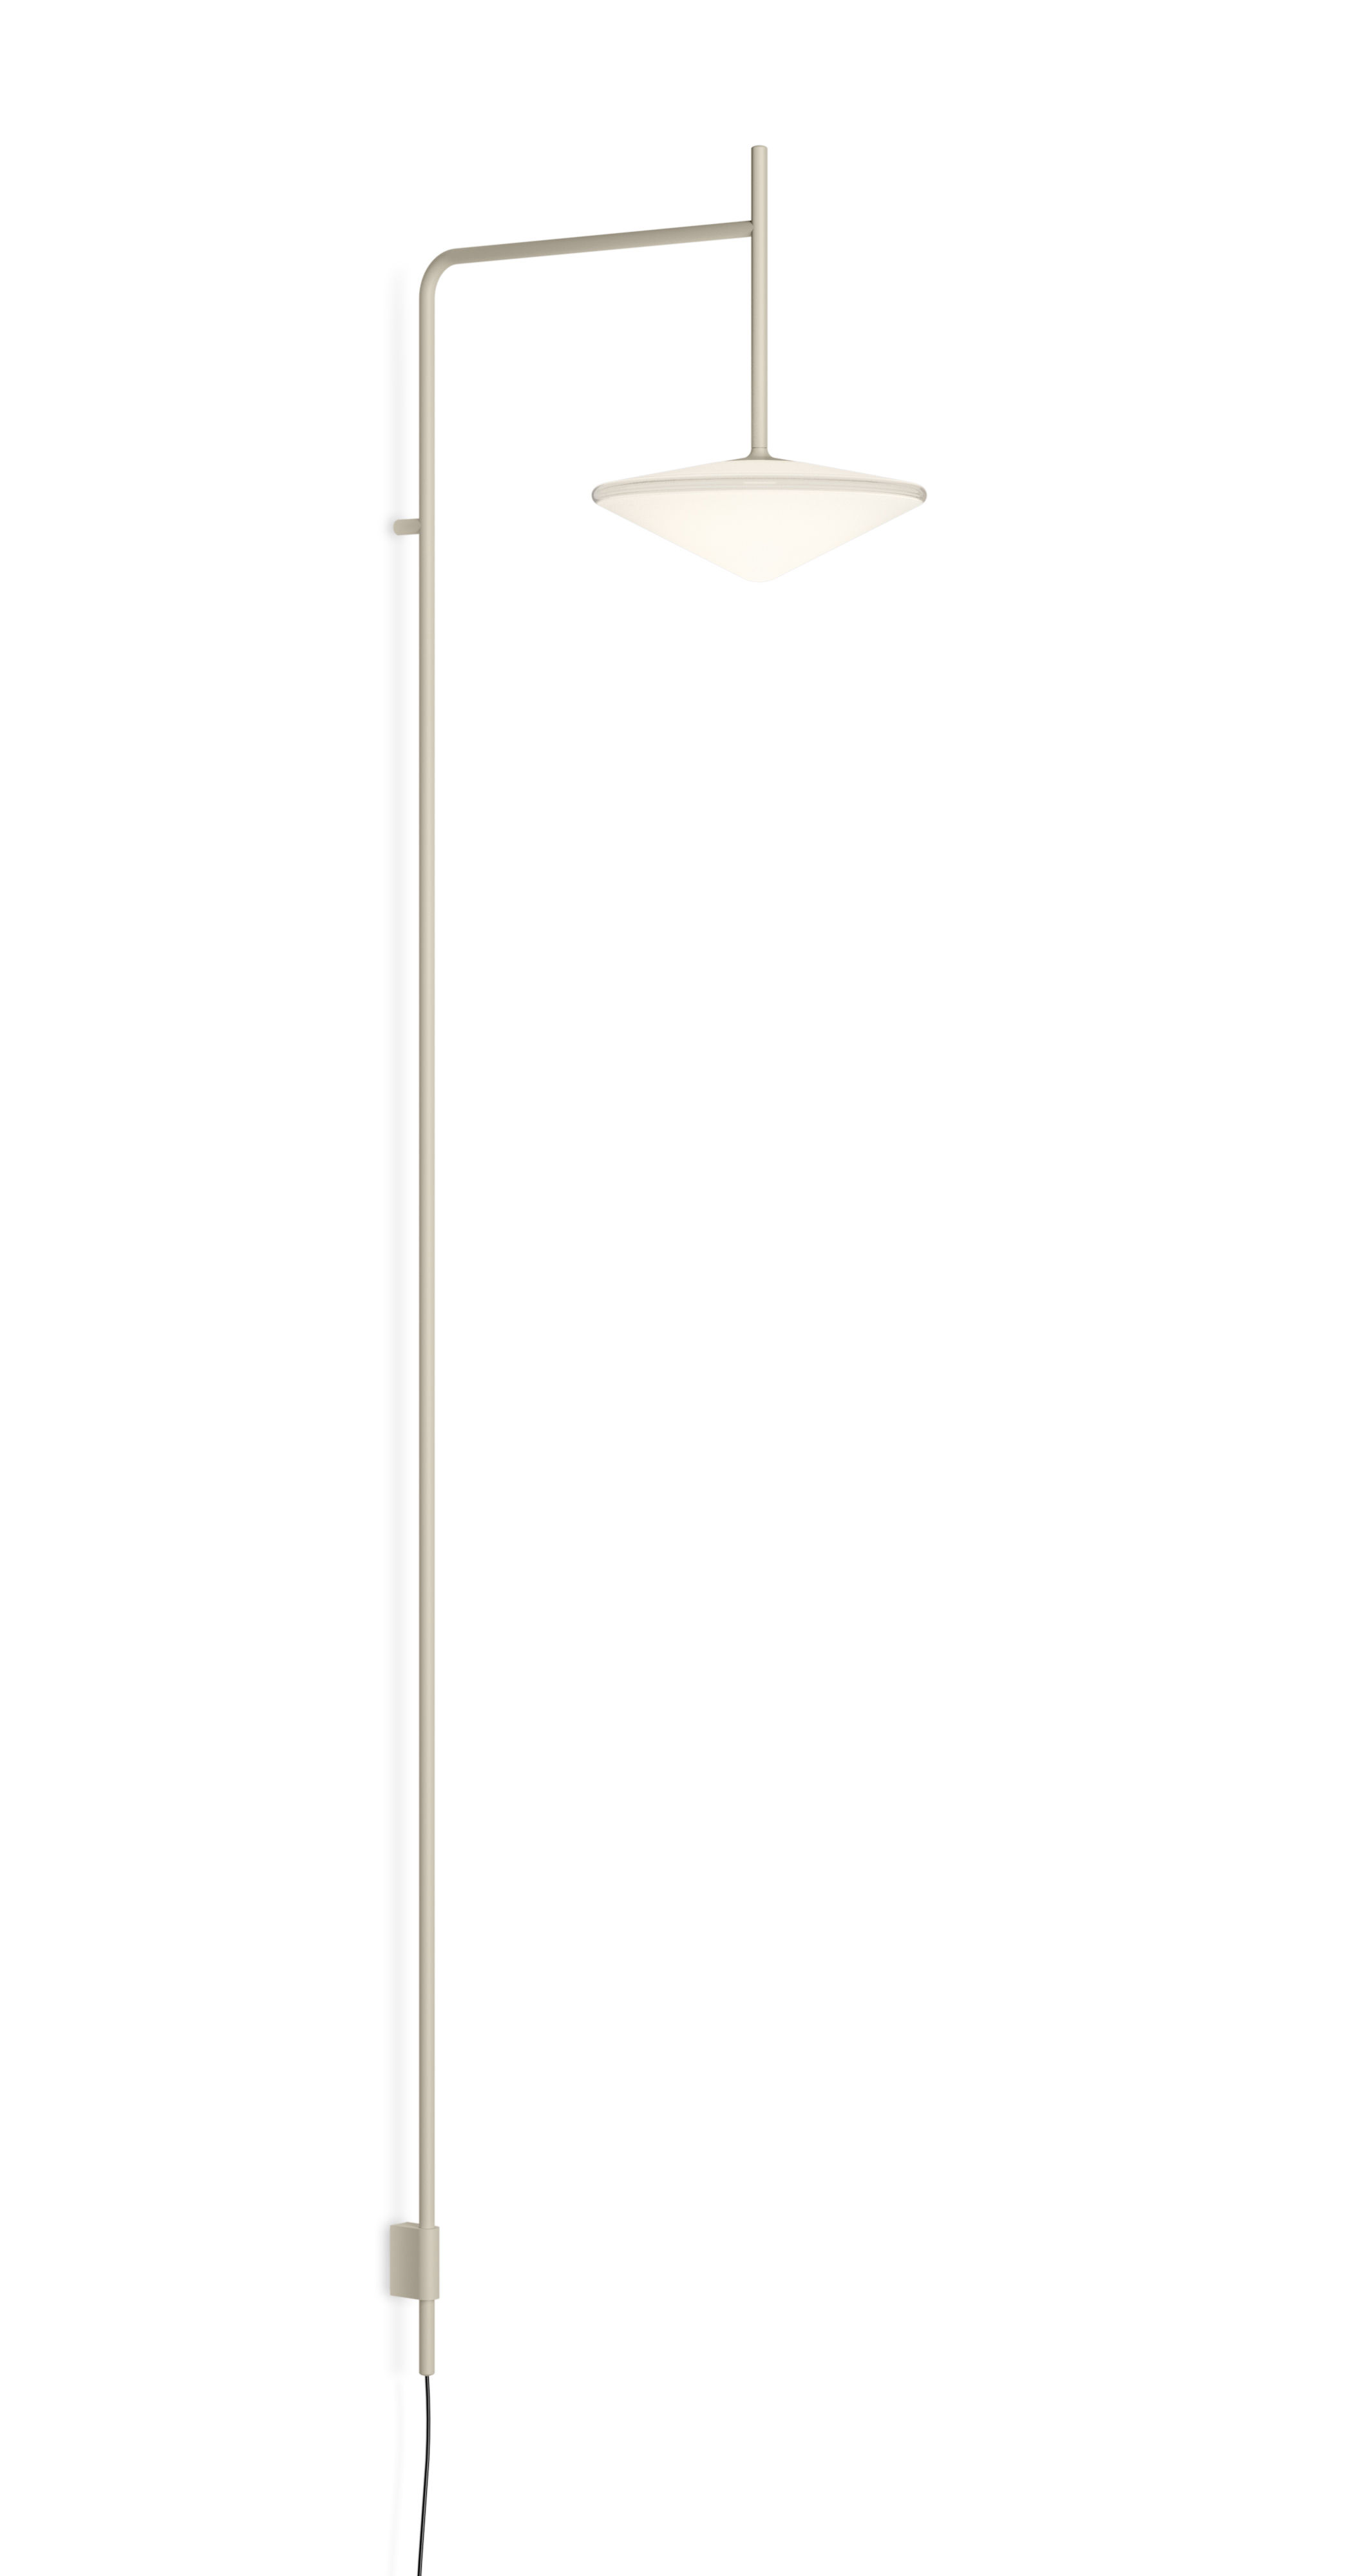 Lighting - Wall Lights - Tempo Triangle Wall light - / LED - Fixed arm L 40 cm by Vibia - Beige - Blown glass, Lacquered steel